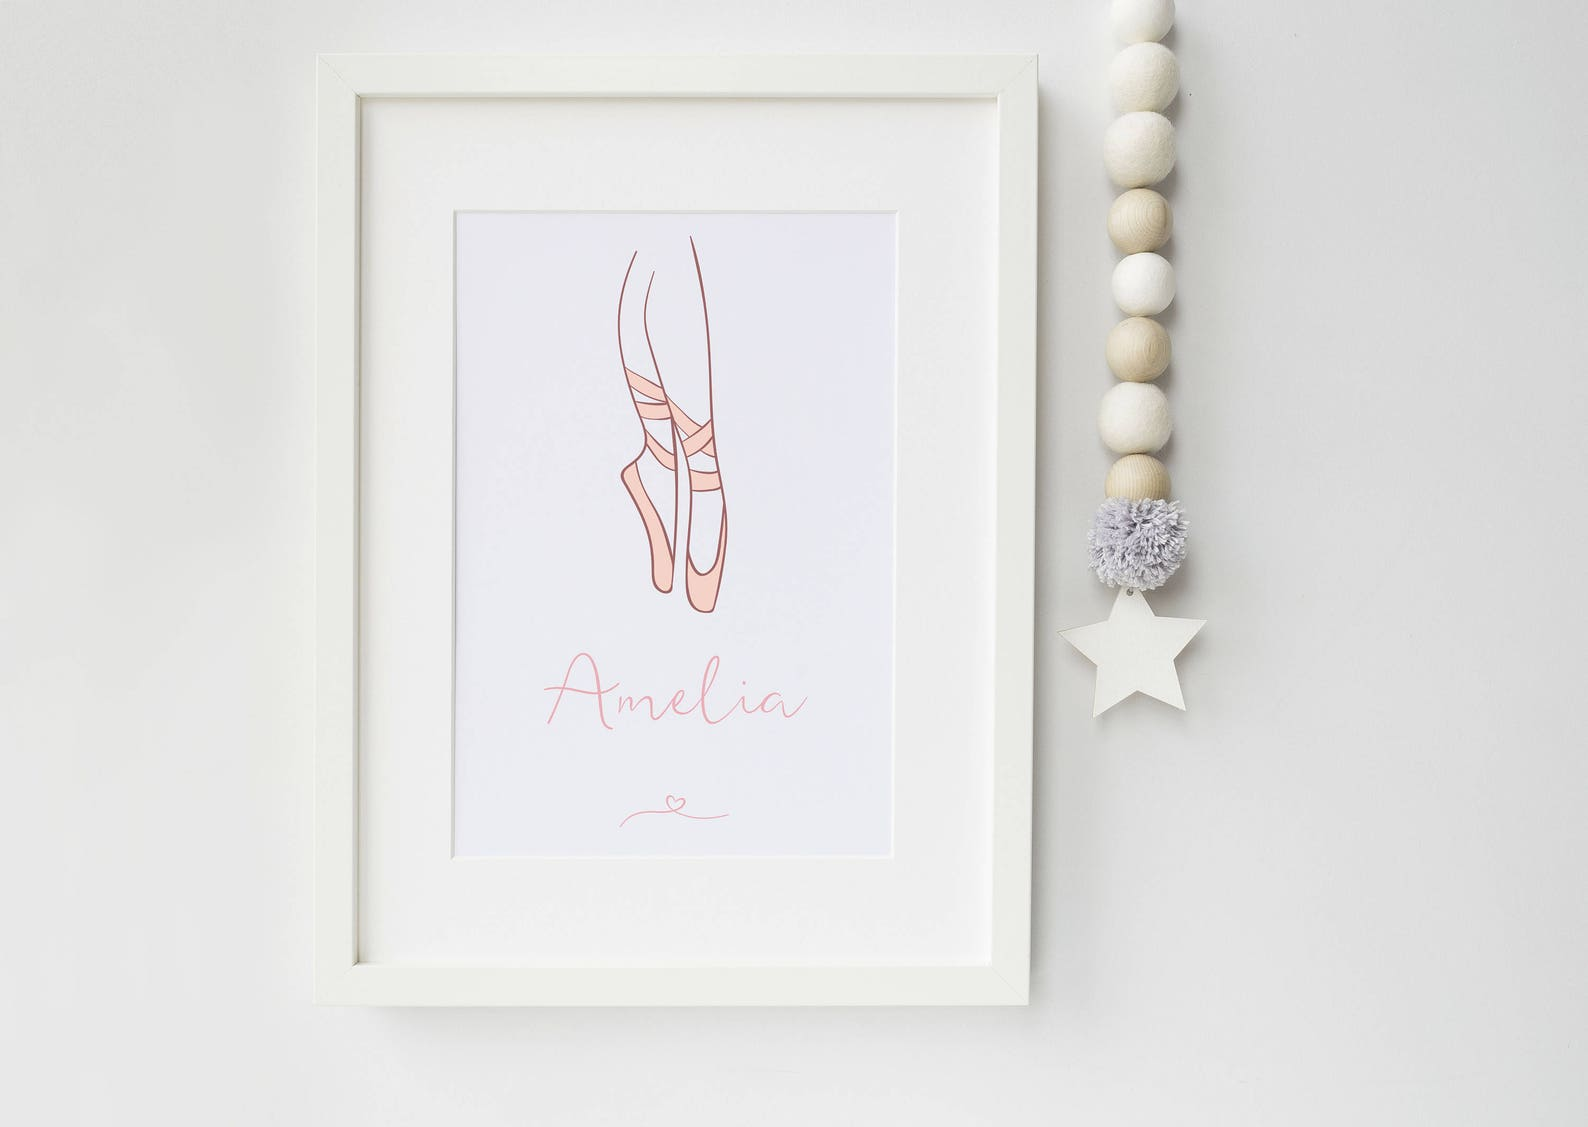 ballerina pointe shoes personalised print - art print - pointe shoes - ballet - ballet print - ballerina - ideal gift for ballet